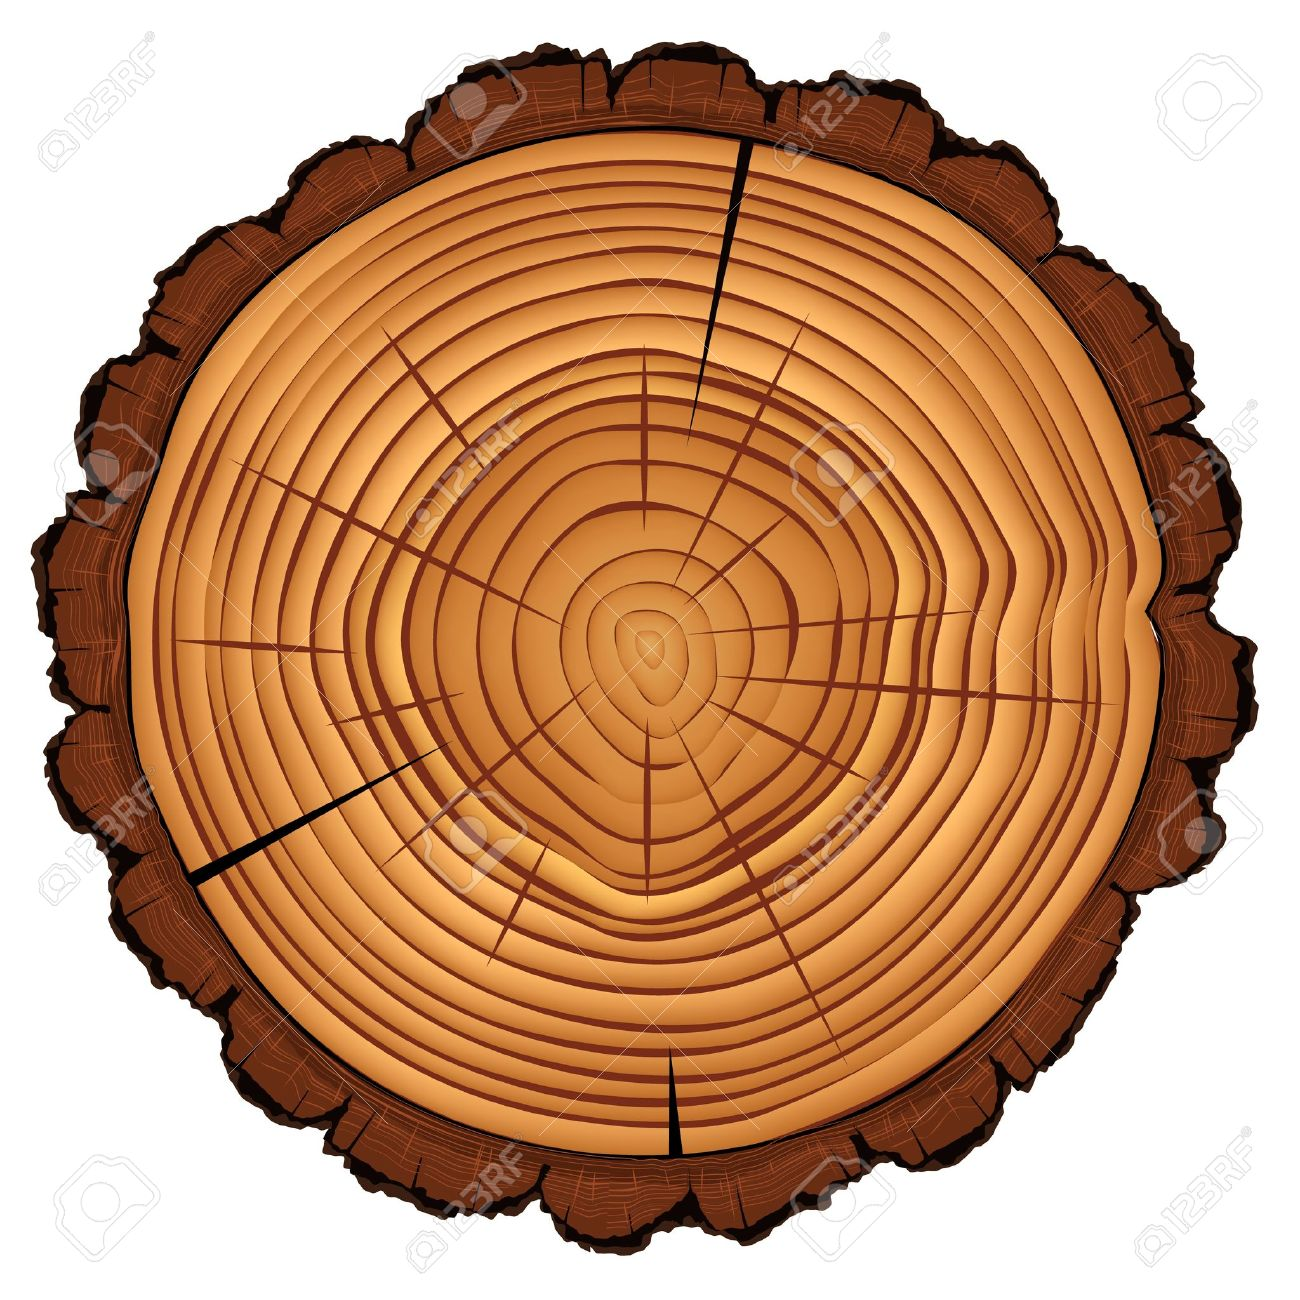 Cross section of tree stump isolated on white - 20198704